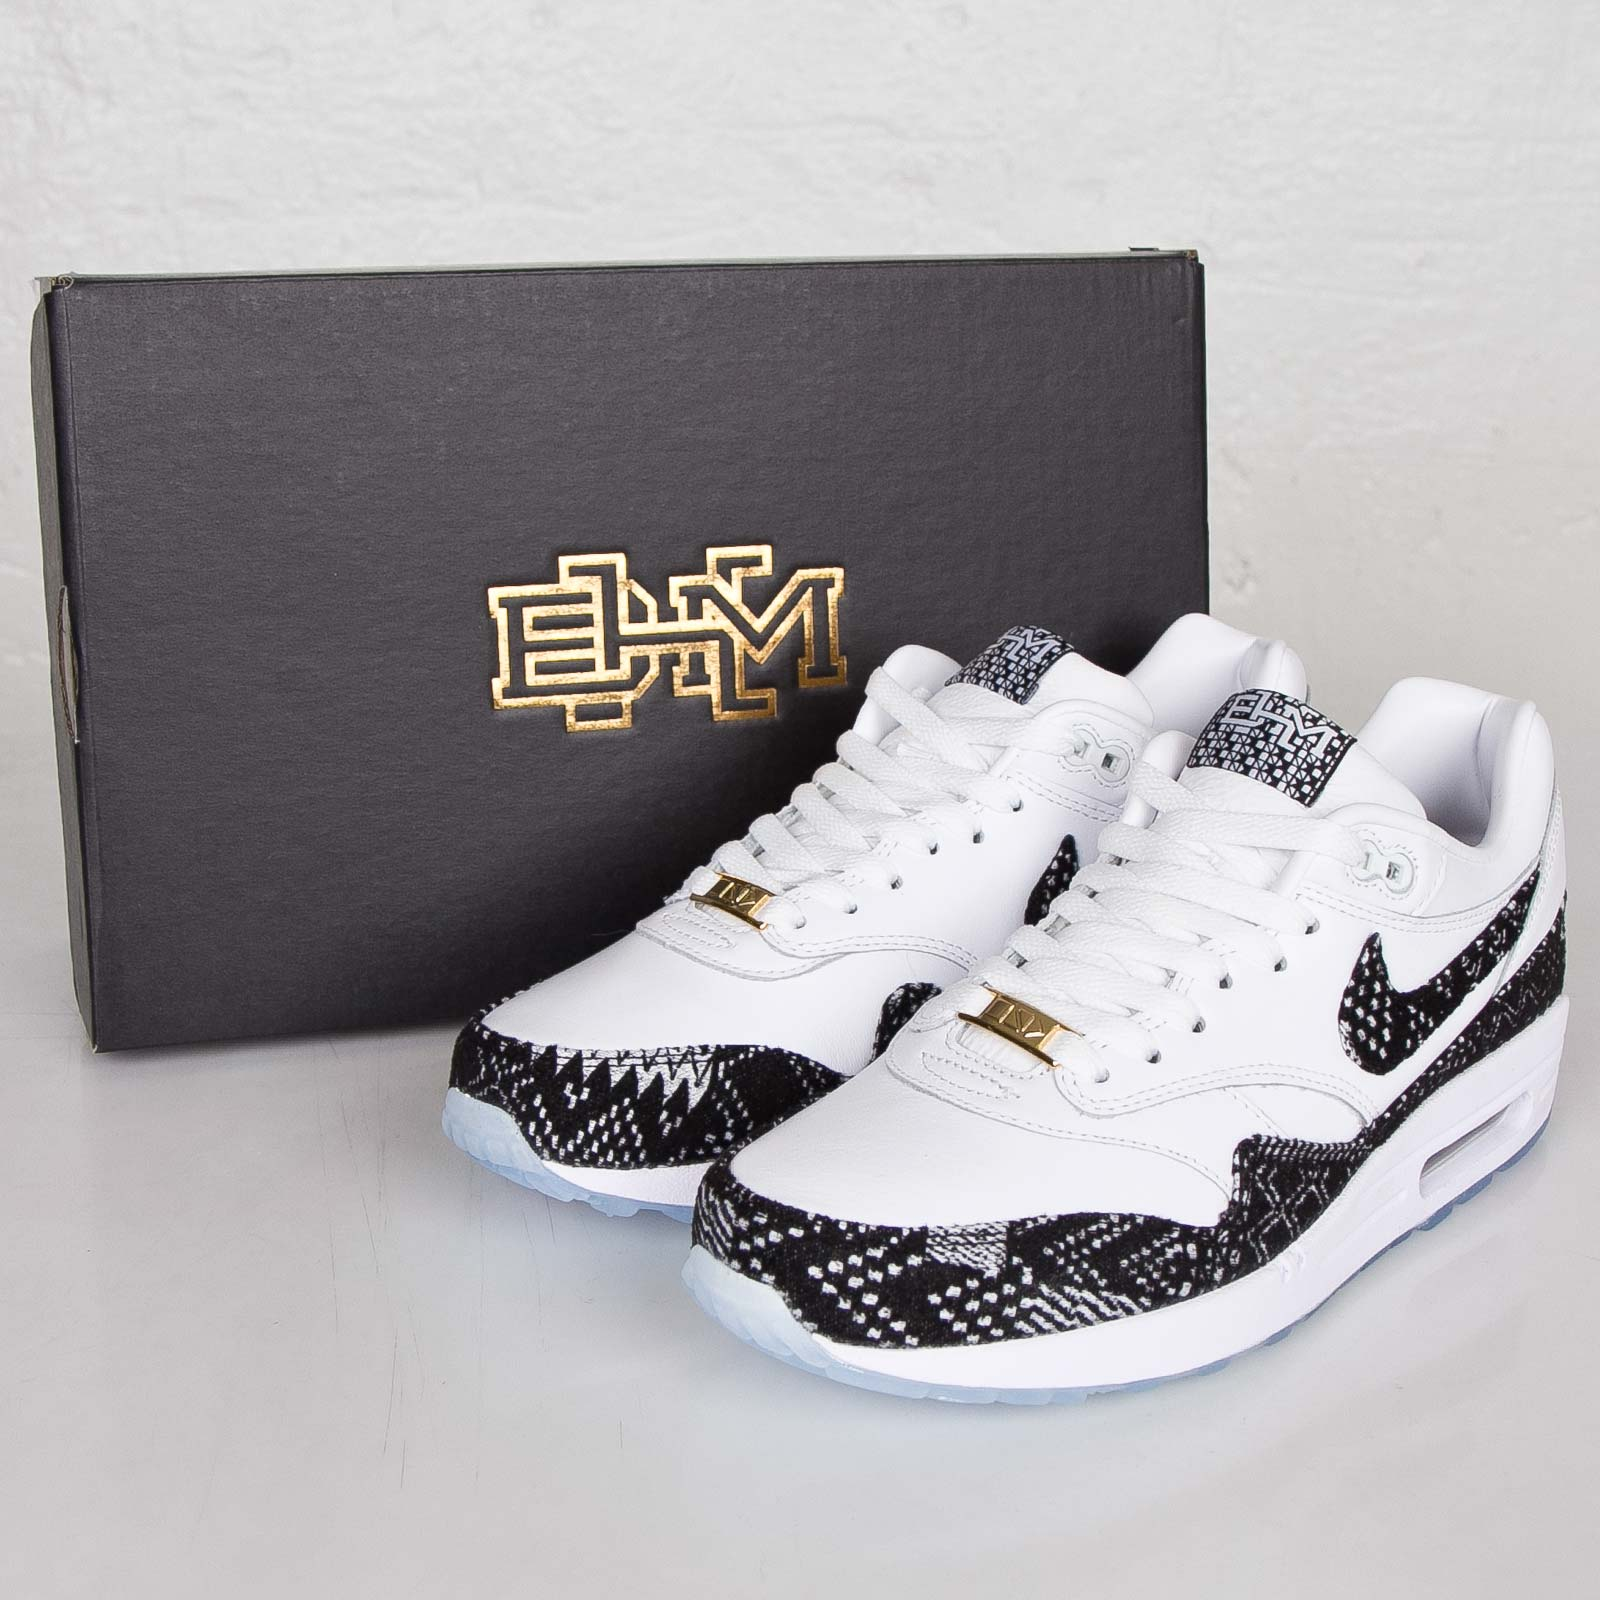 2015 Bhm Air Max 1 Nike Air Max 1 Og Obsidian For Sale Model Aviation